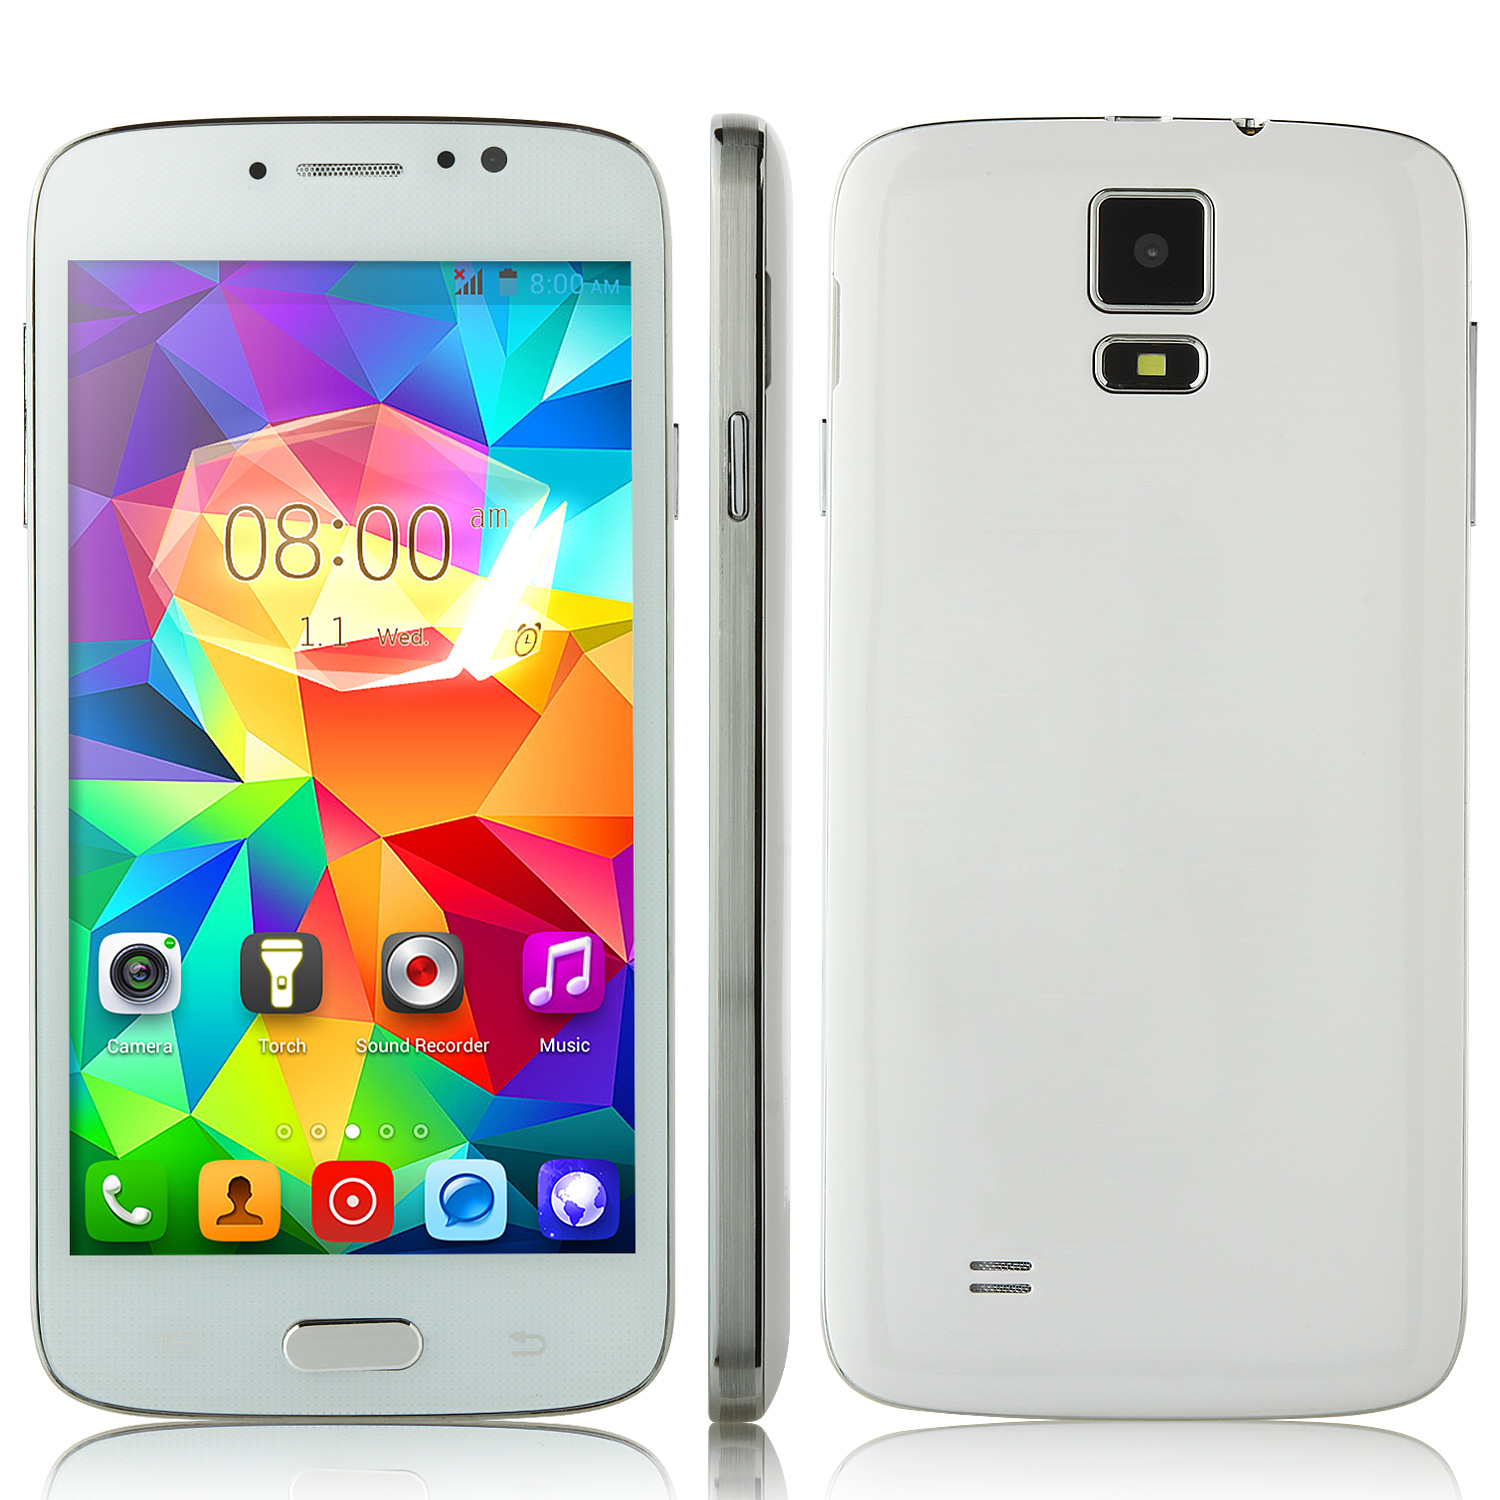 F-G906+ Smartphone Android 4.2 MTK6572W 5.0 Inch 3G GPS White